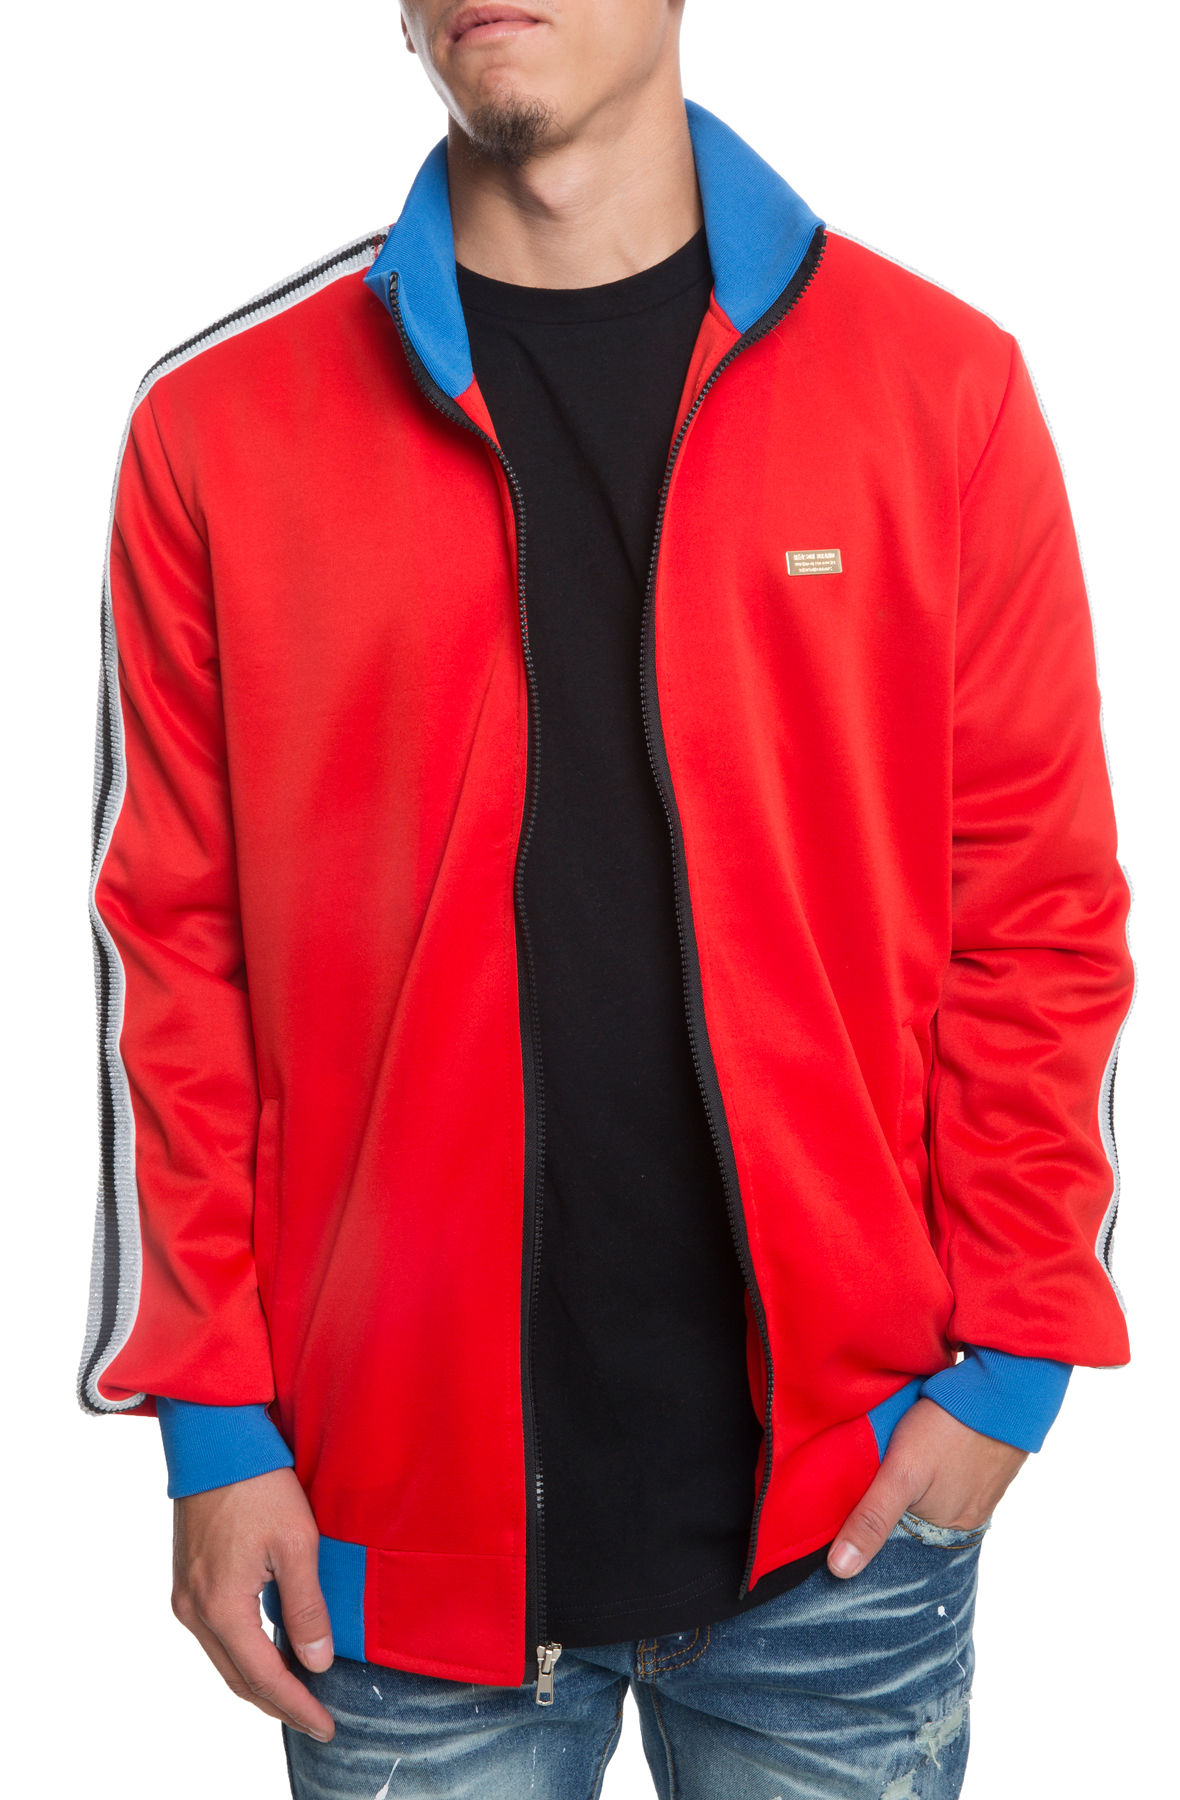 Image of The Melrose Track Jacket in Red